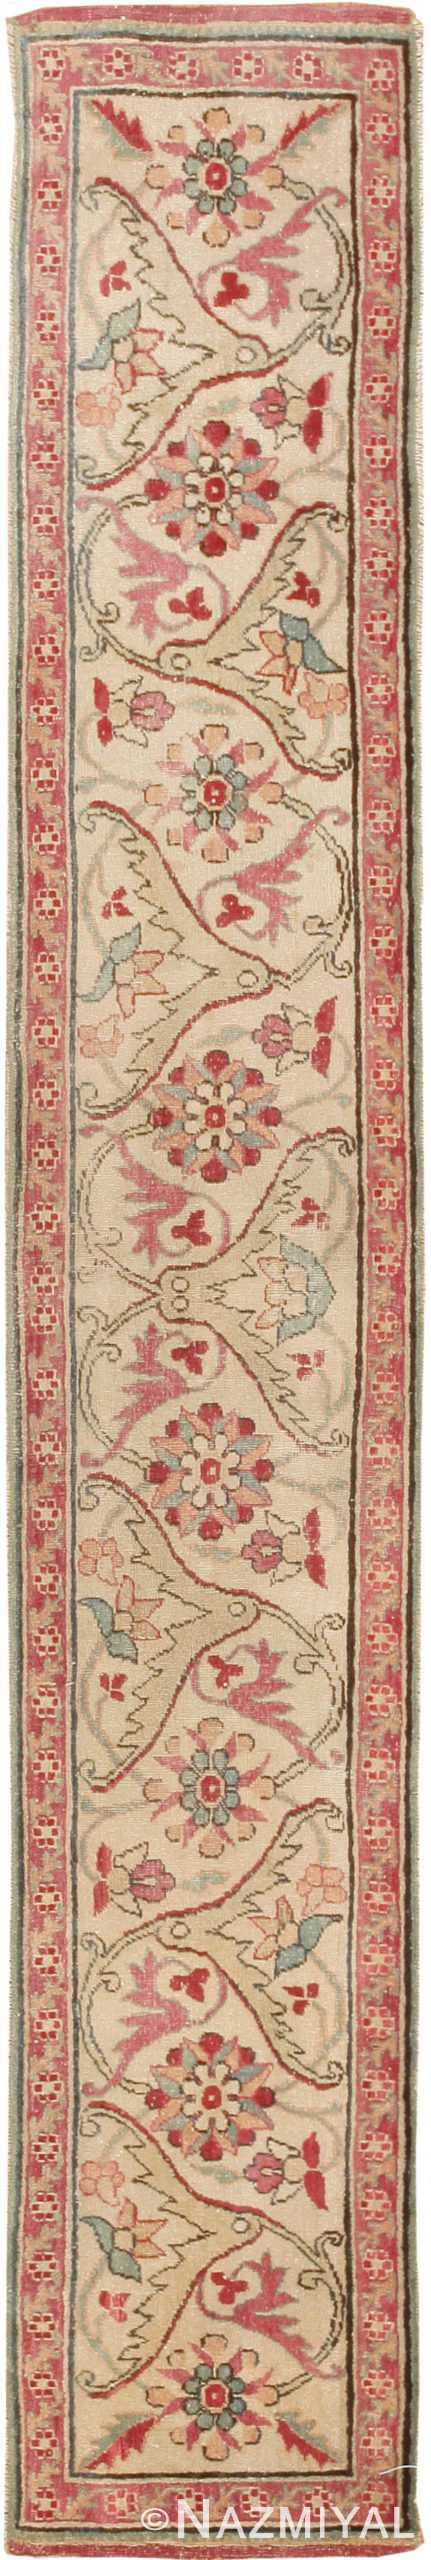 Antique Khorassan Persian Sampler Rug 1595 Nazmiyal